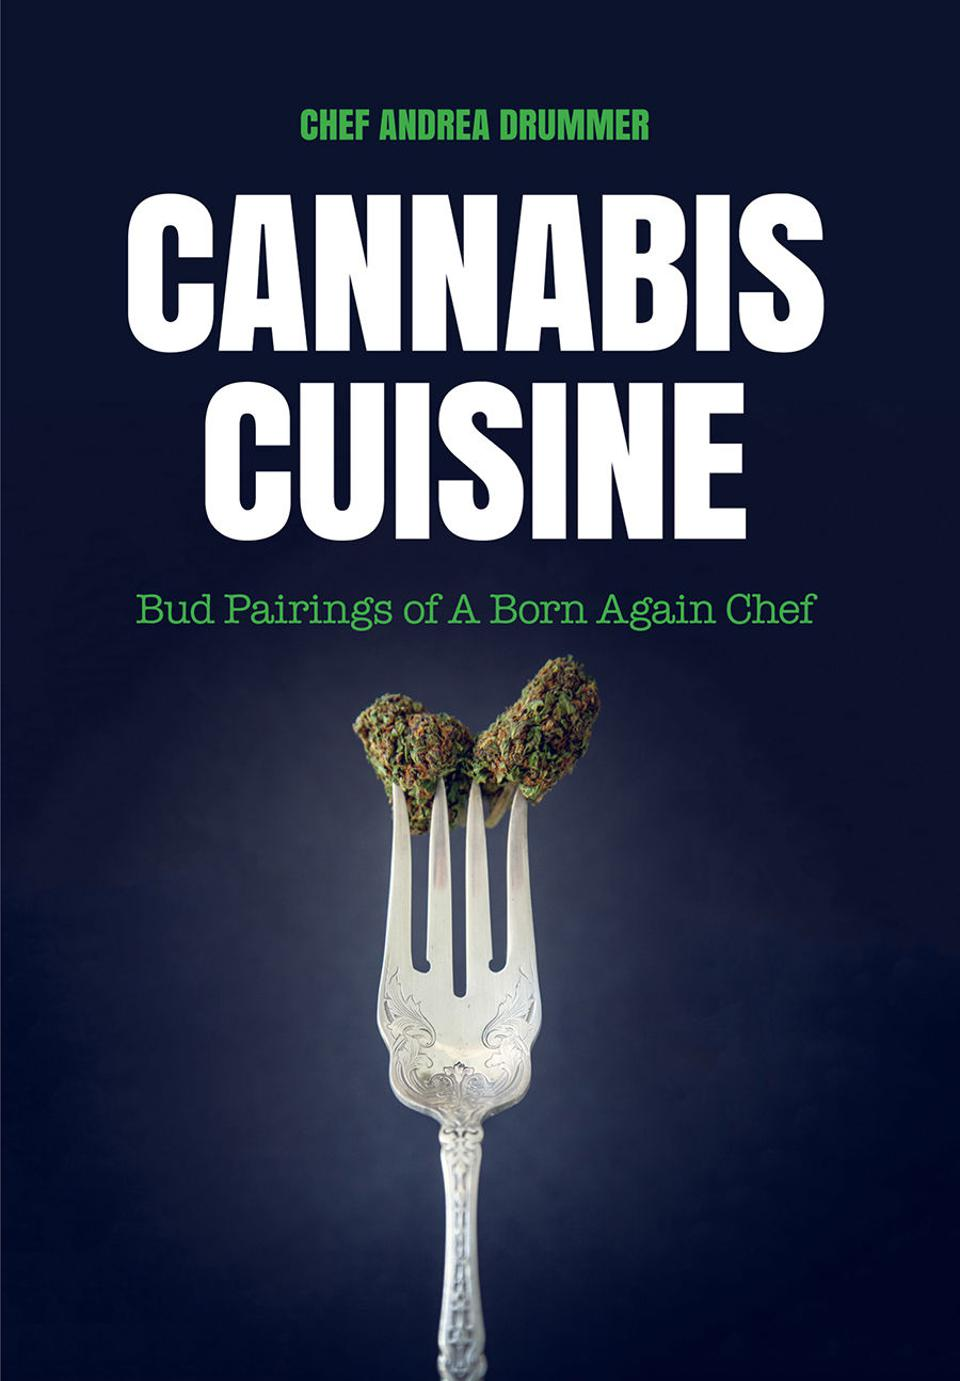 Cannabis Cuisine, cooking with cannabis, cannabis cookbooks